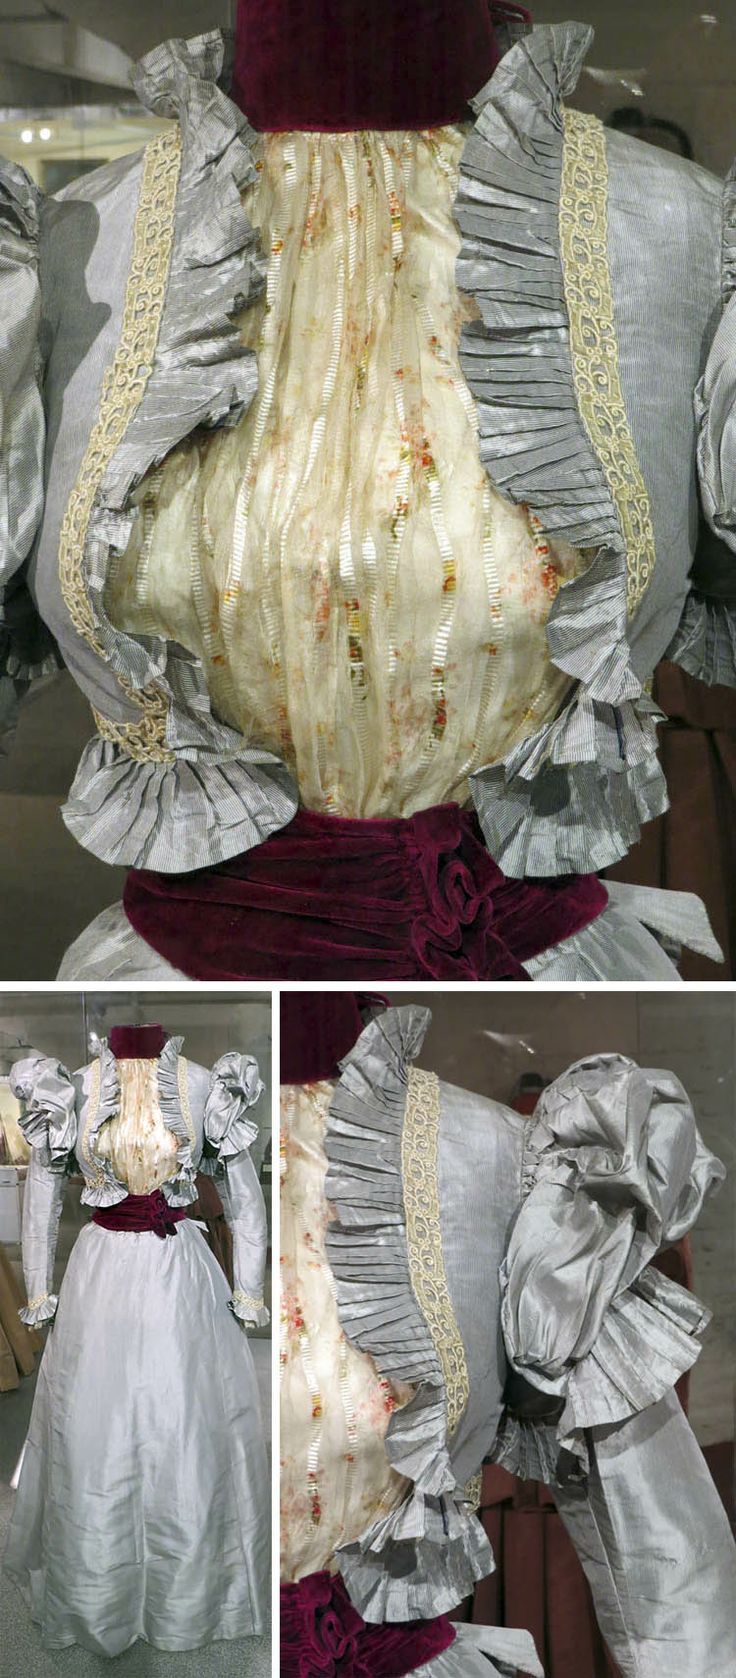 "From the Moscow exhibit ""Fashion as the Mirror of History,"" a dress of silk rep or silk taffeta, crimson velvet trim, silk, and machine lace, Russia, 1898. From a Russian discussion forum, posted by someone identified as Lena GM. Thank you for the gorgeous pics, Lena!"